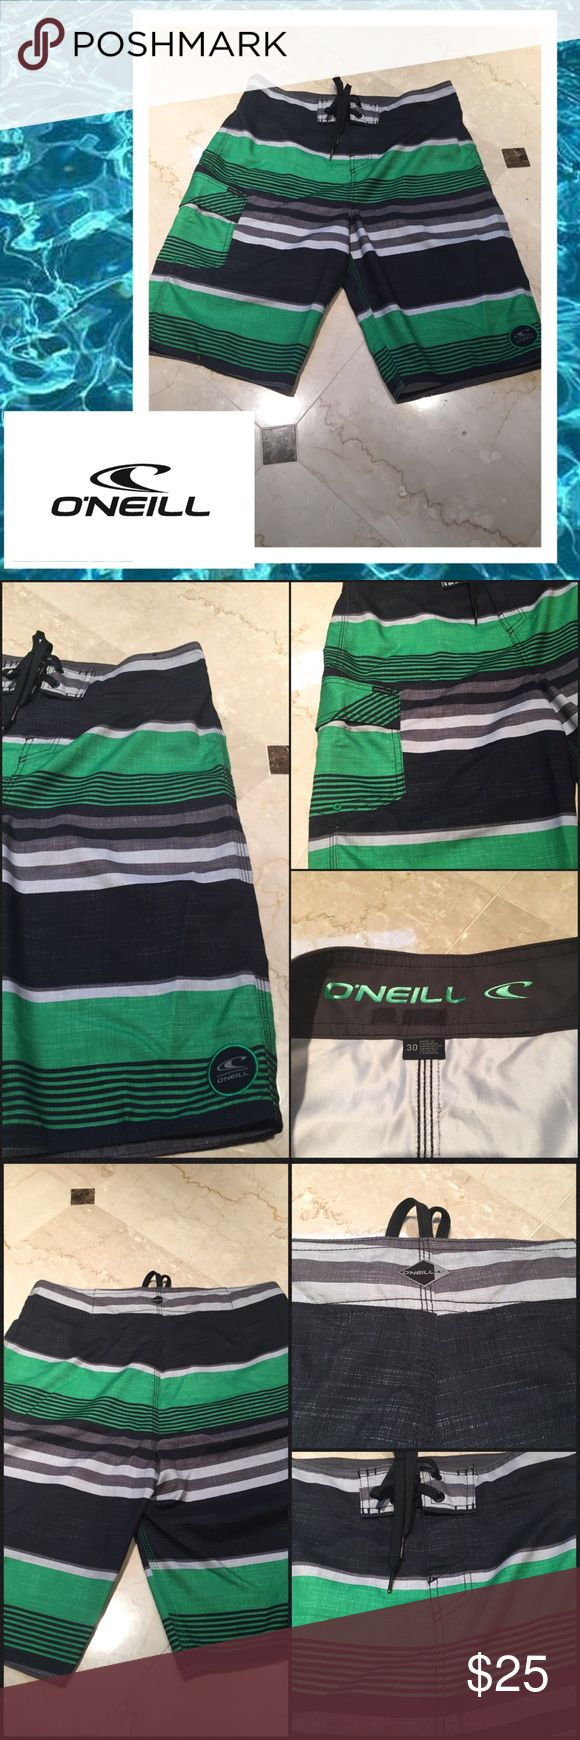 "🎊HP-6/5/17🎊💦Men's O'Neill board shorts💦 🎊HP-6/5/17- Mens style party🎊Men's O'Neill board shorts. Not lined. Great pattern of stripes of greys, black and green. One exterior Velcro pocket. Velcro/tie closure. Waist is size 30 and length measures 21.5"".  No rips or stains and in great condition. O'Neill Swim Board Shorts"